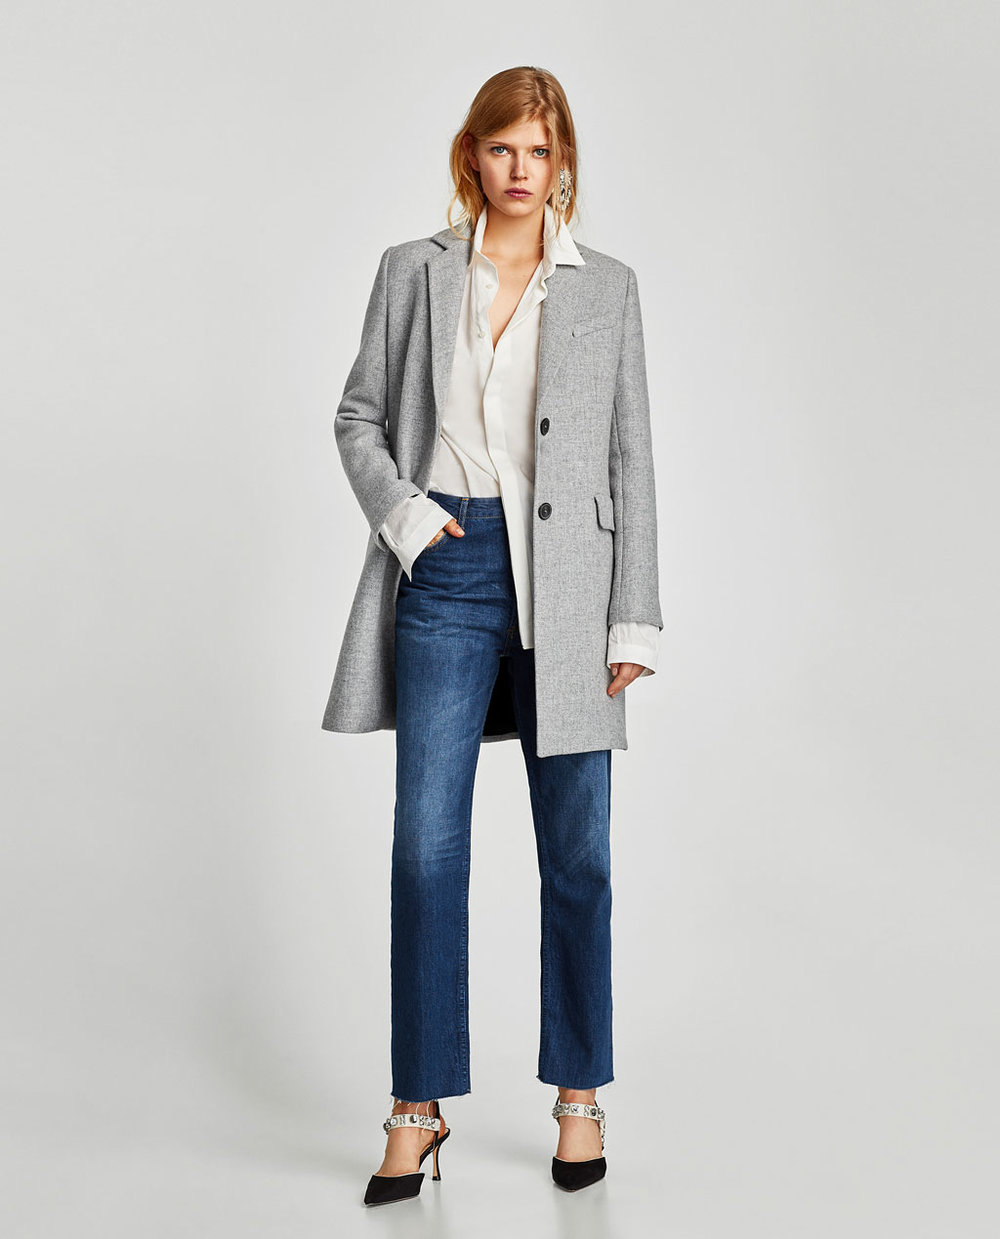 Zara Coat with Shoulder Pads $169